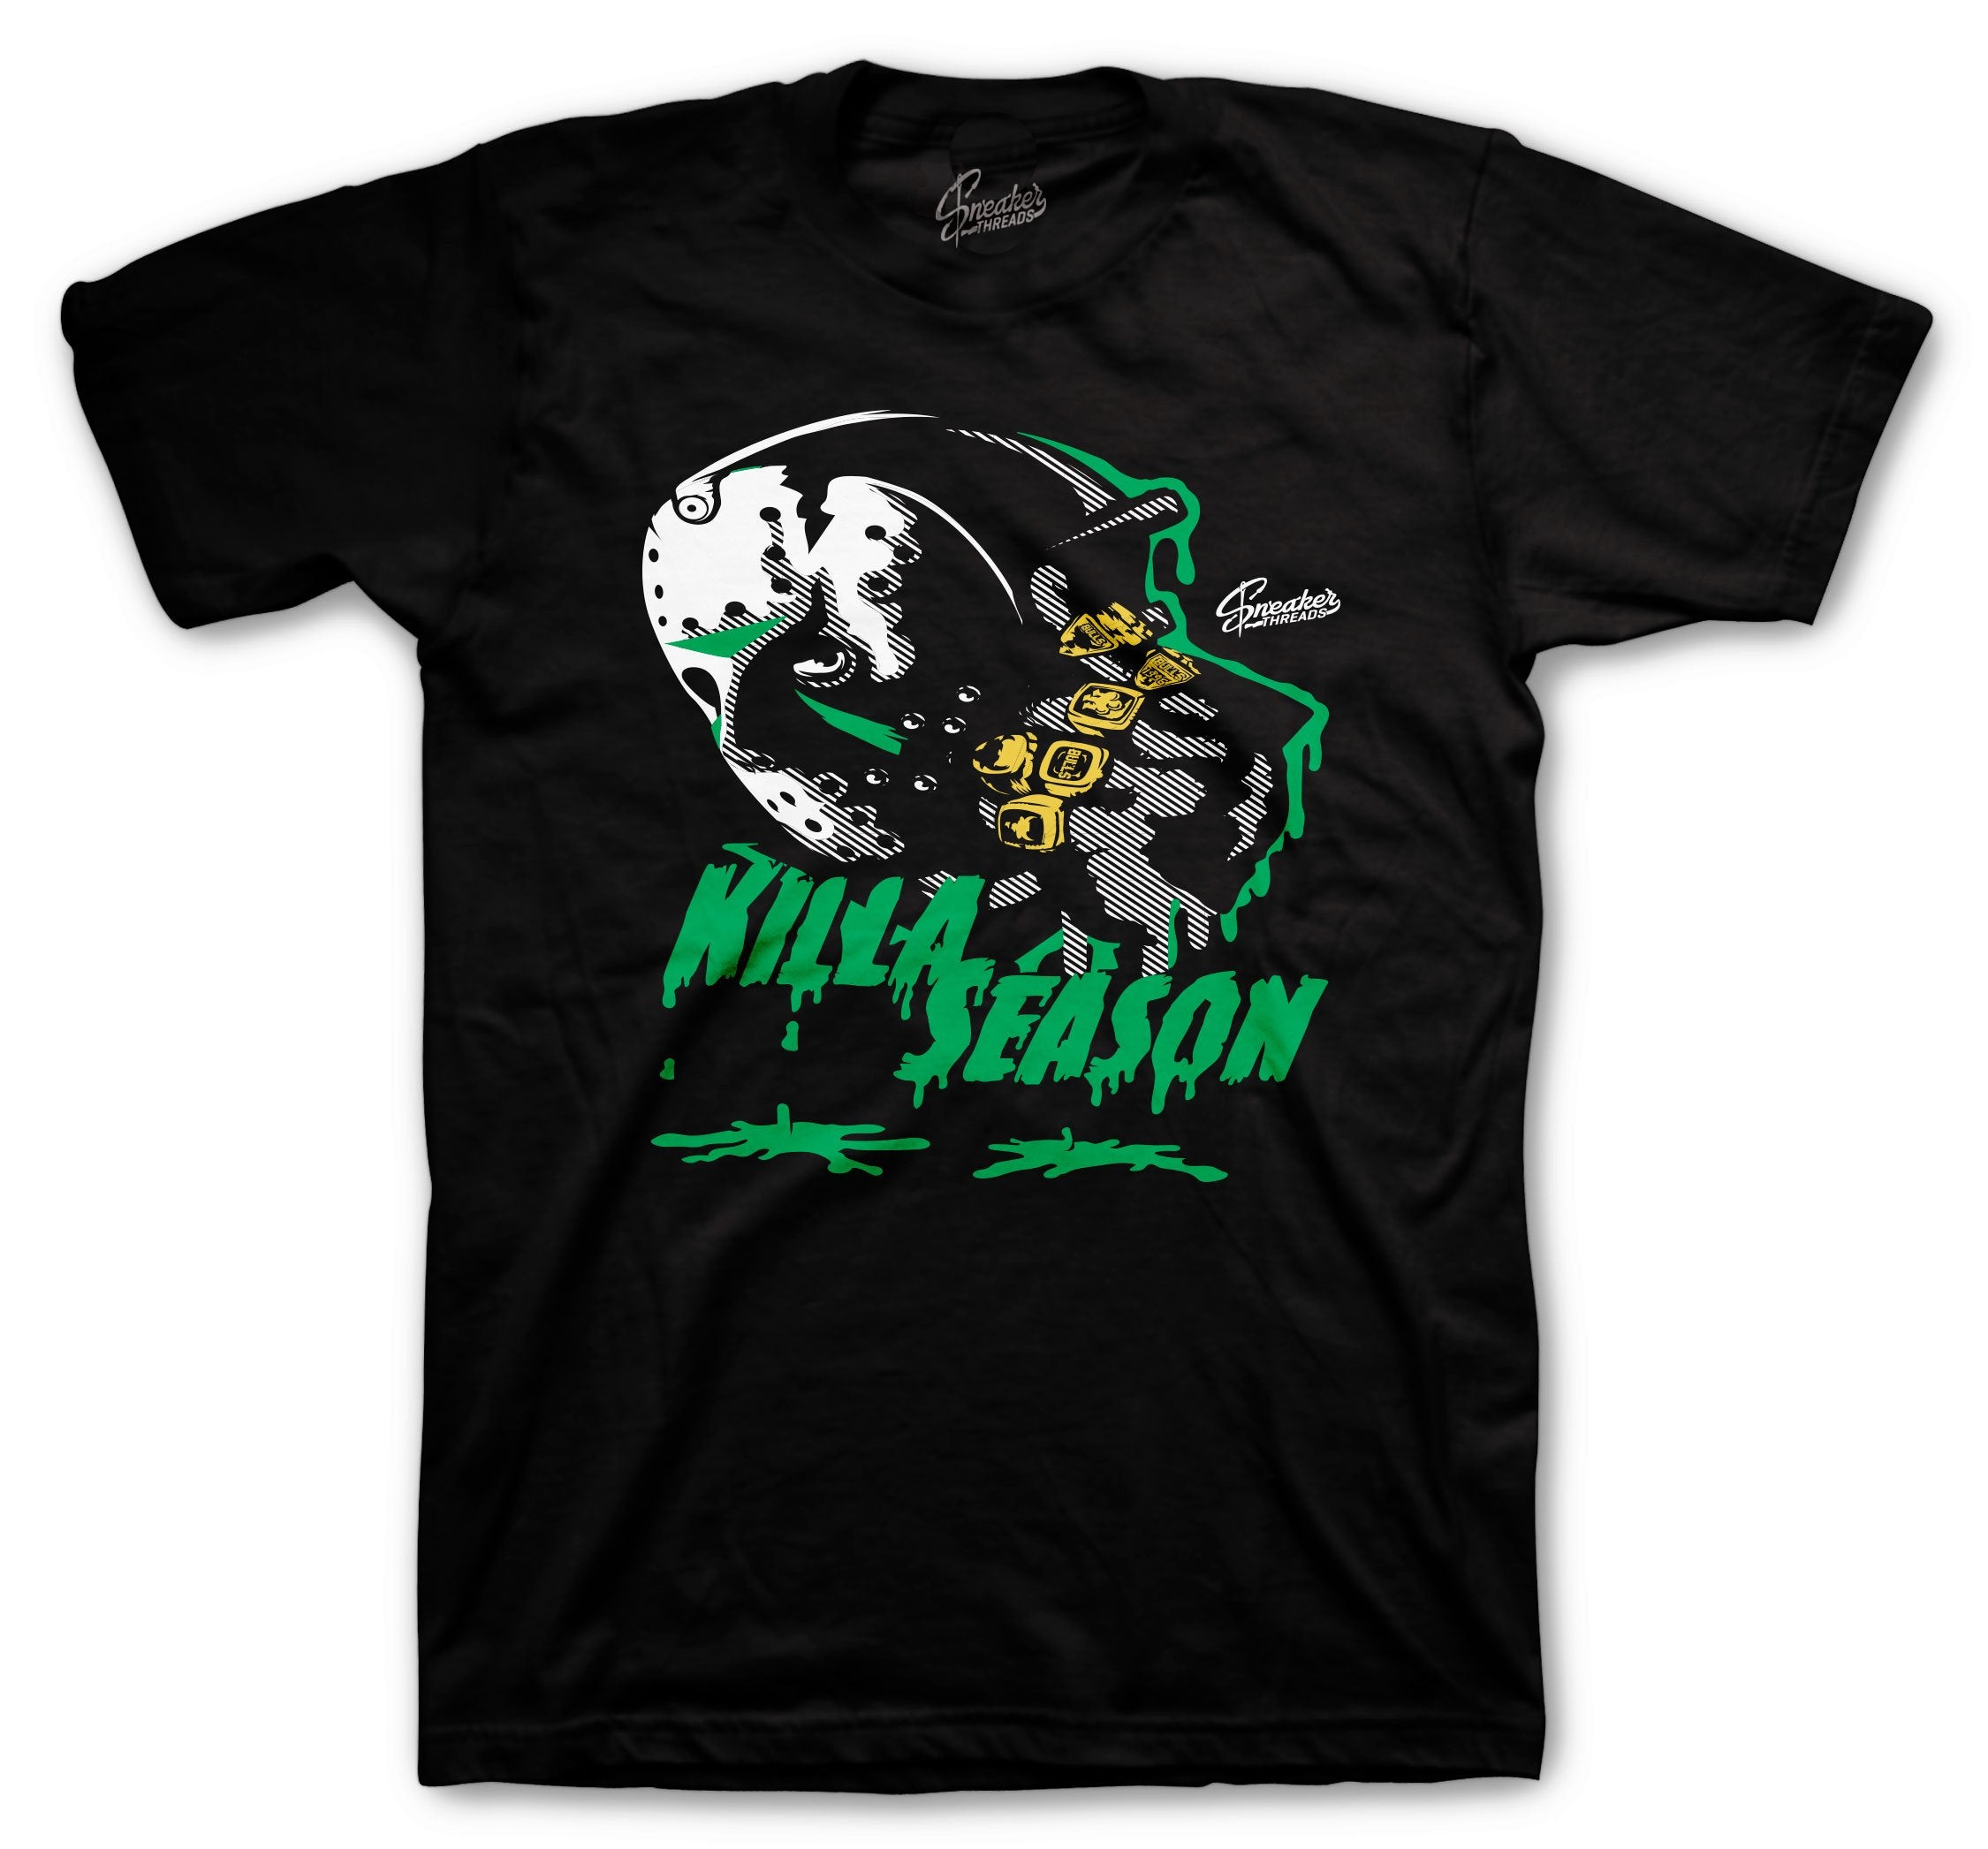 Jordan retro 1 pine green sneaker collection that has t shirt collection